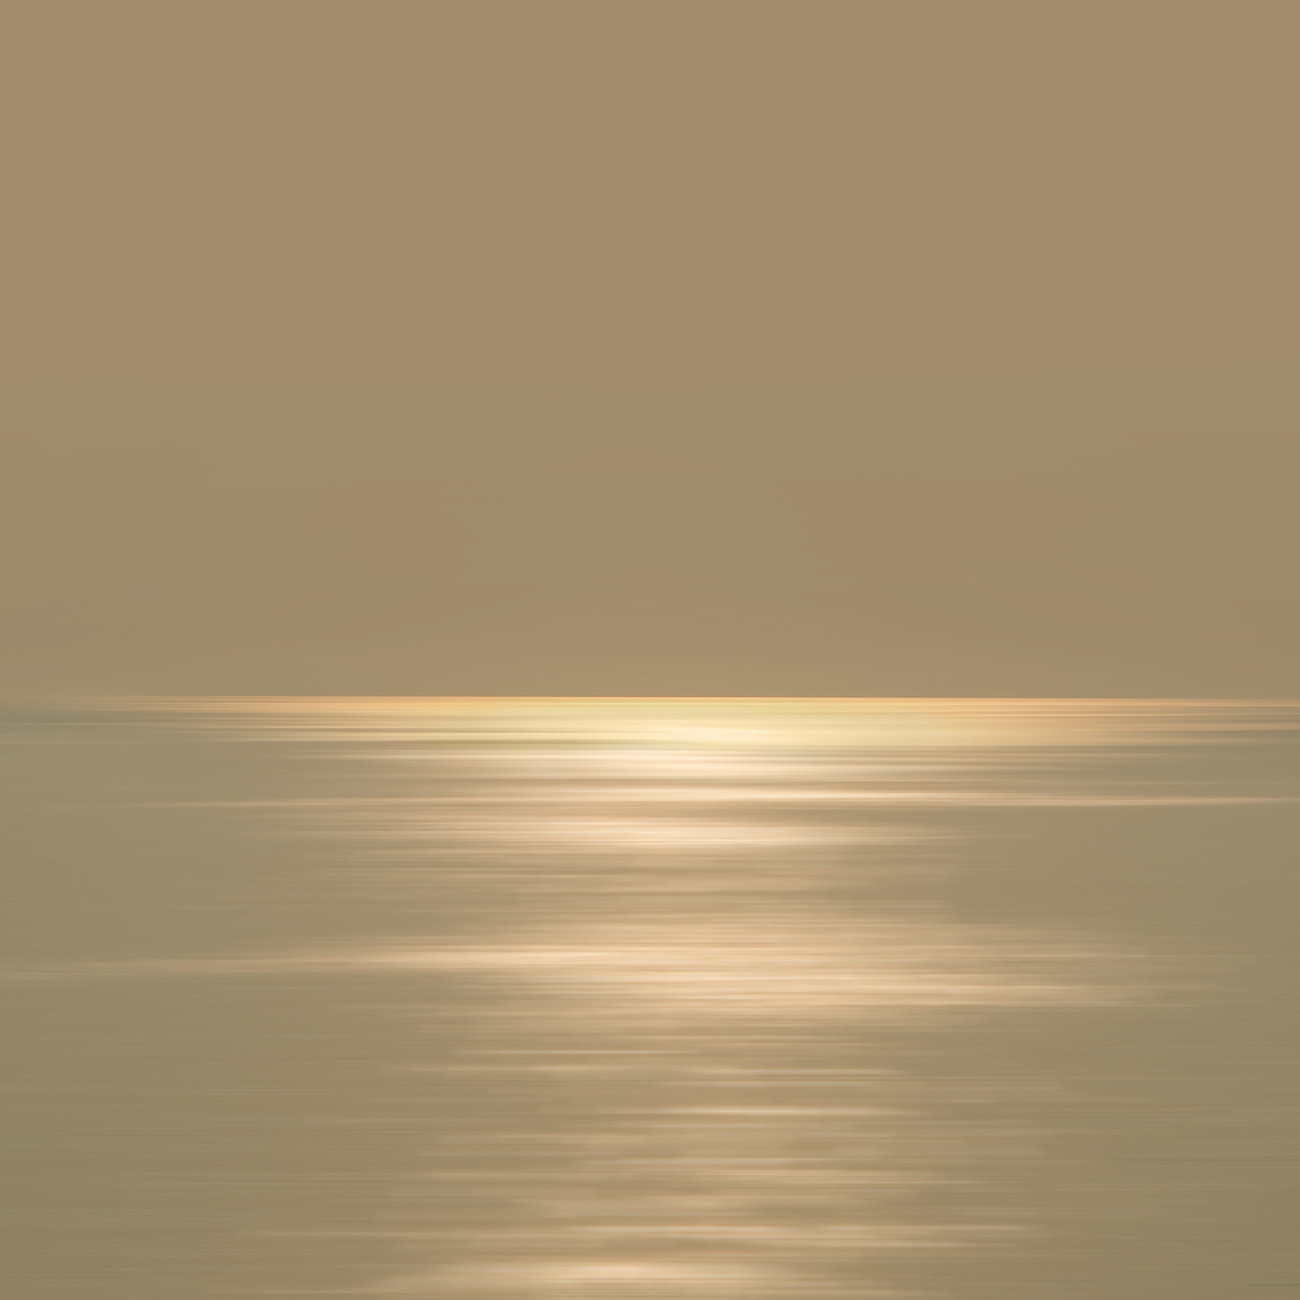 Aegean Sea sunrise reflections, 2011